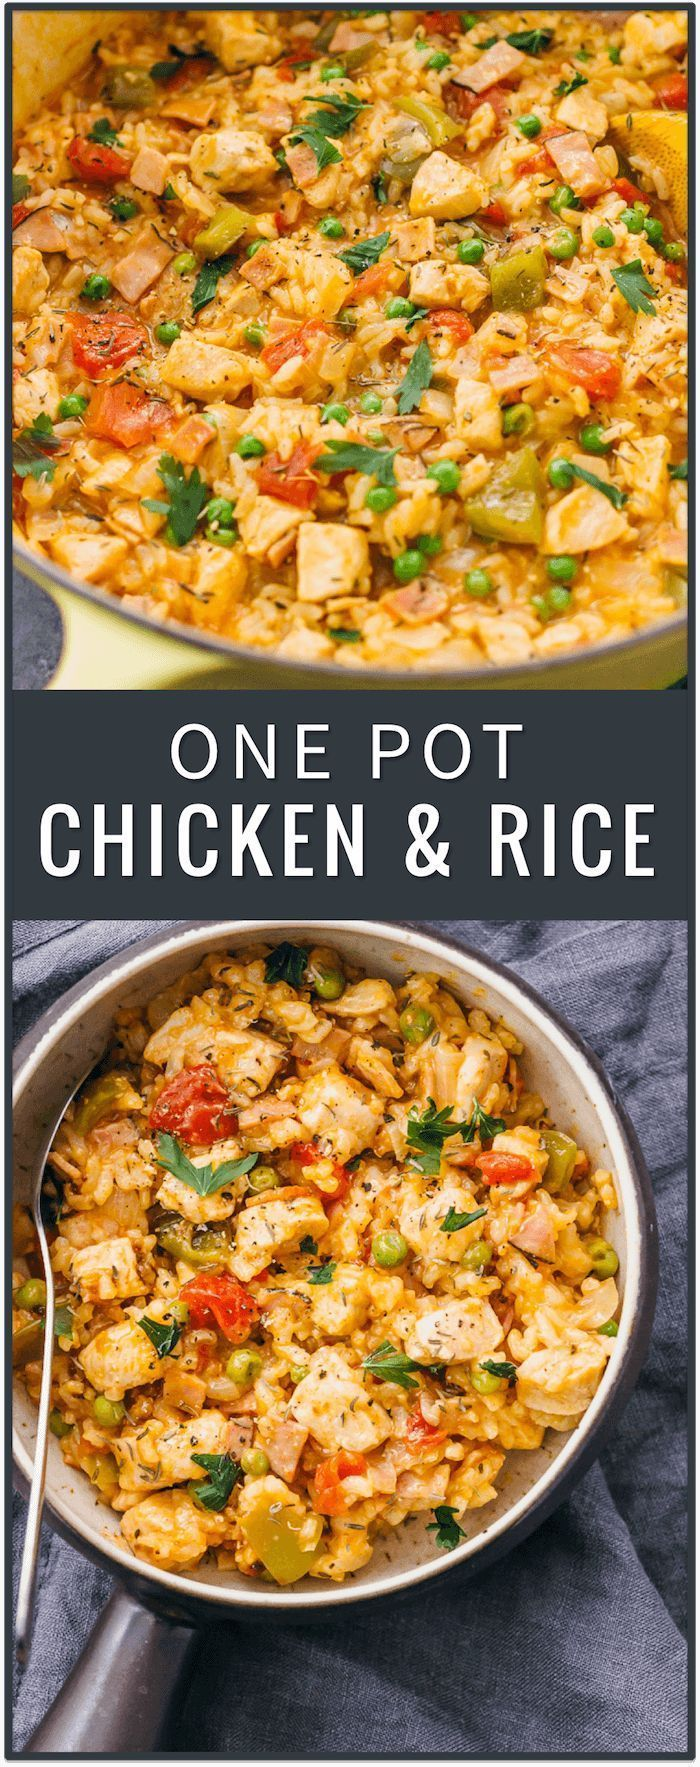 This one pot chicken and rice dinner is the perfect weeknight dinner solution, e... - Food — One Pot -